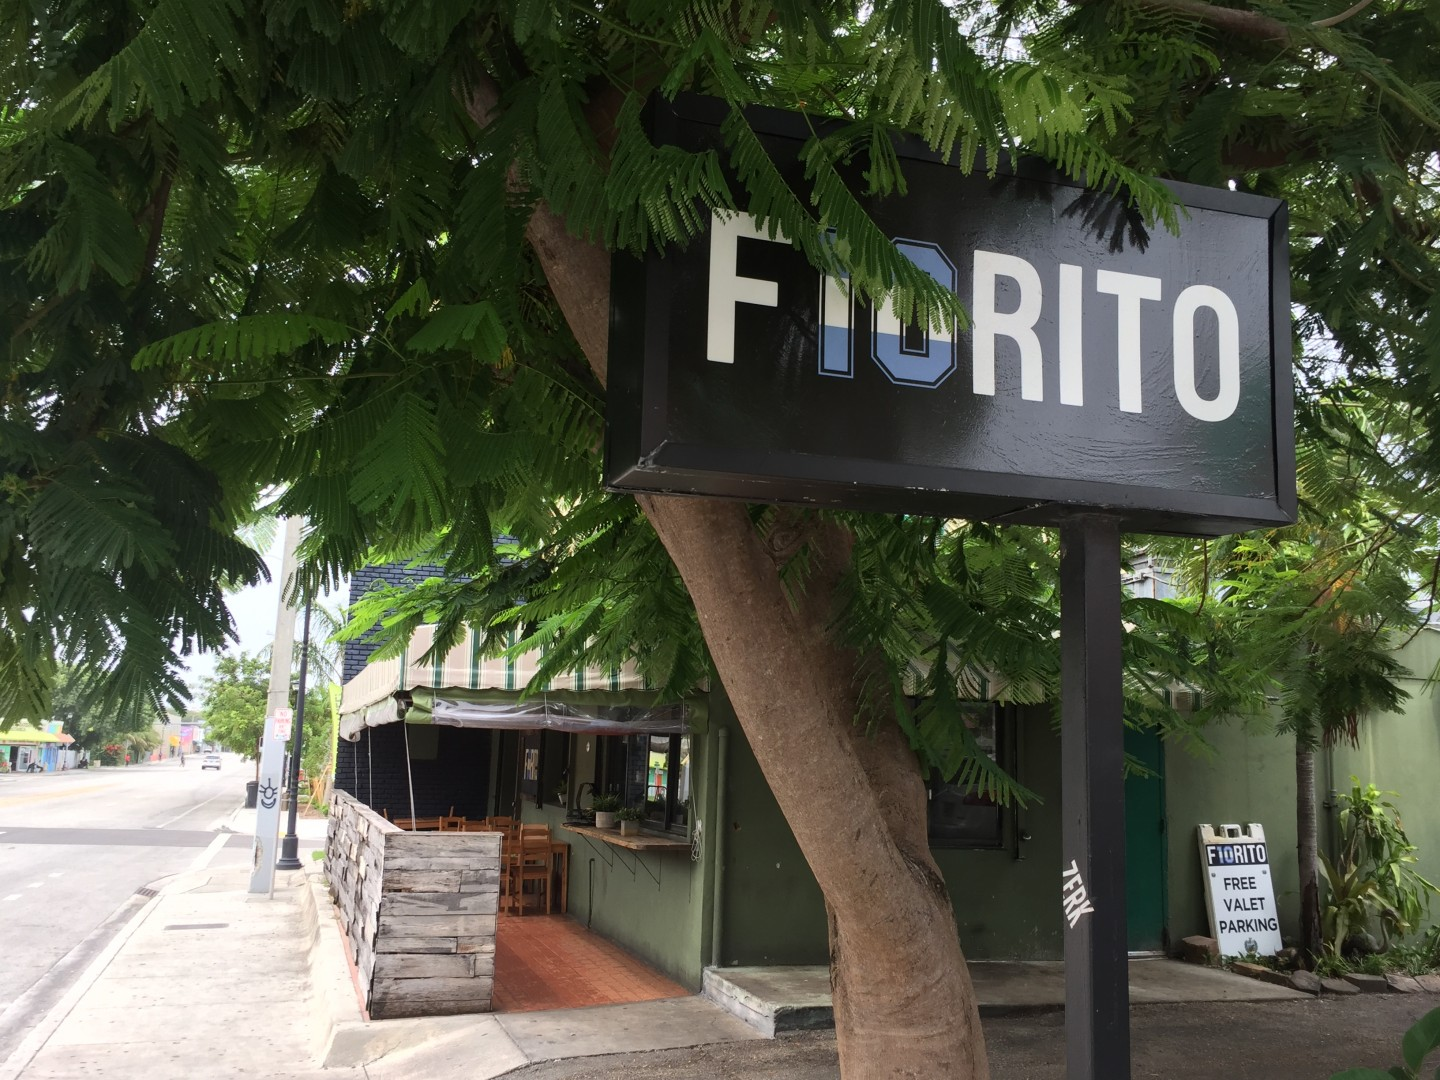 The wynwood Times Fiorito